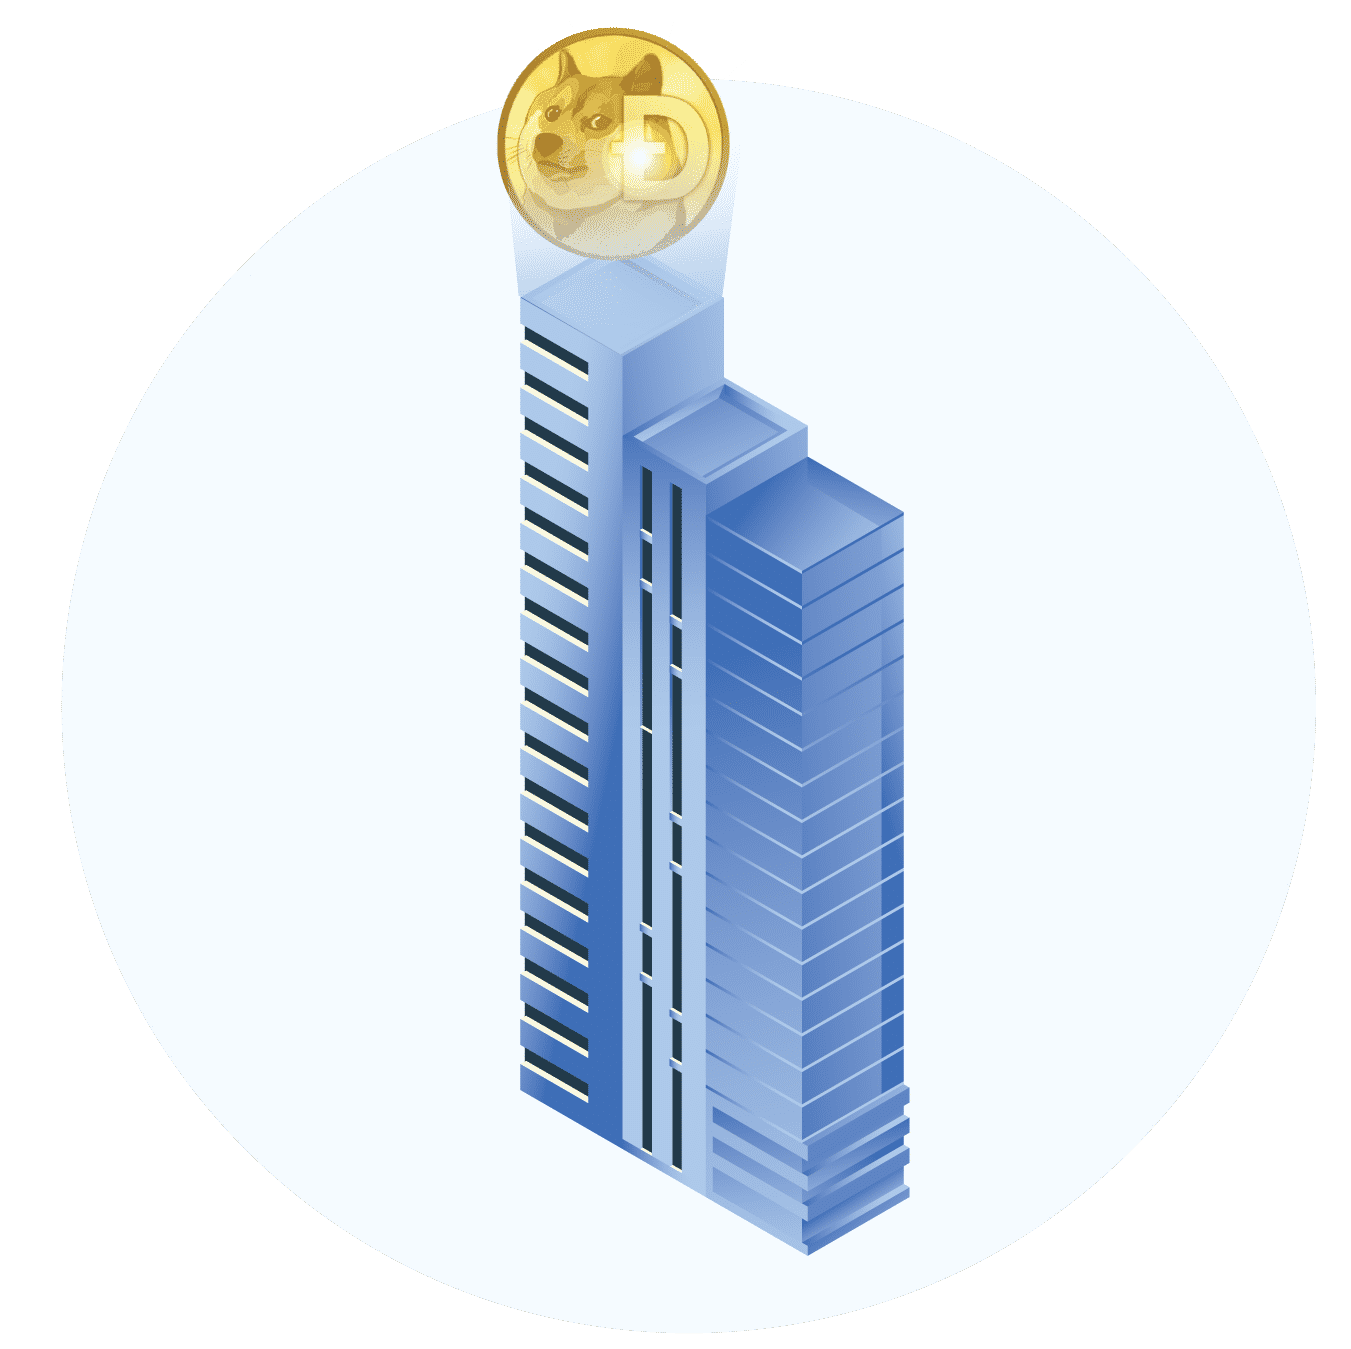 skyscraper with dogecoin